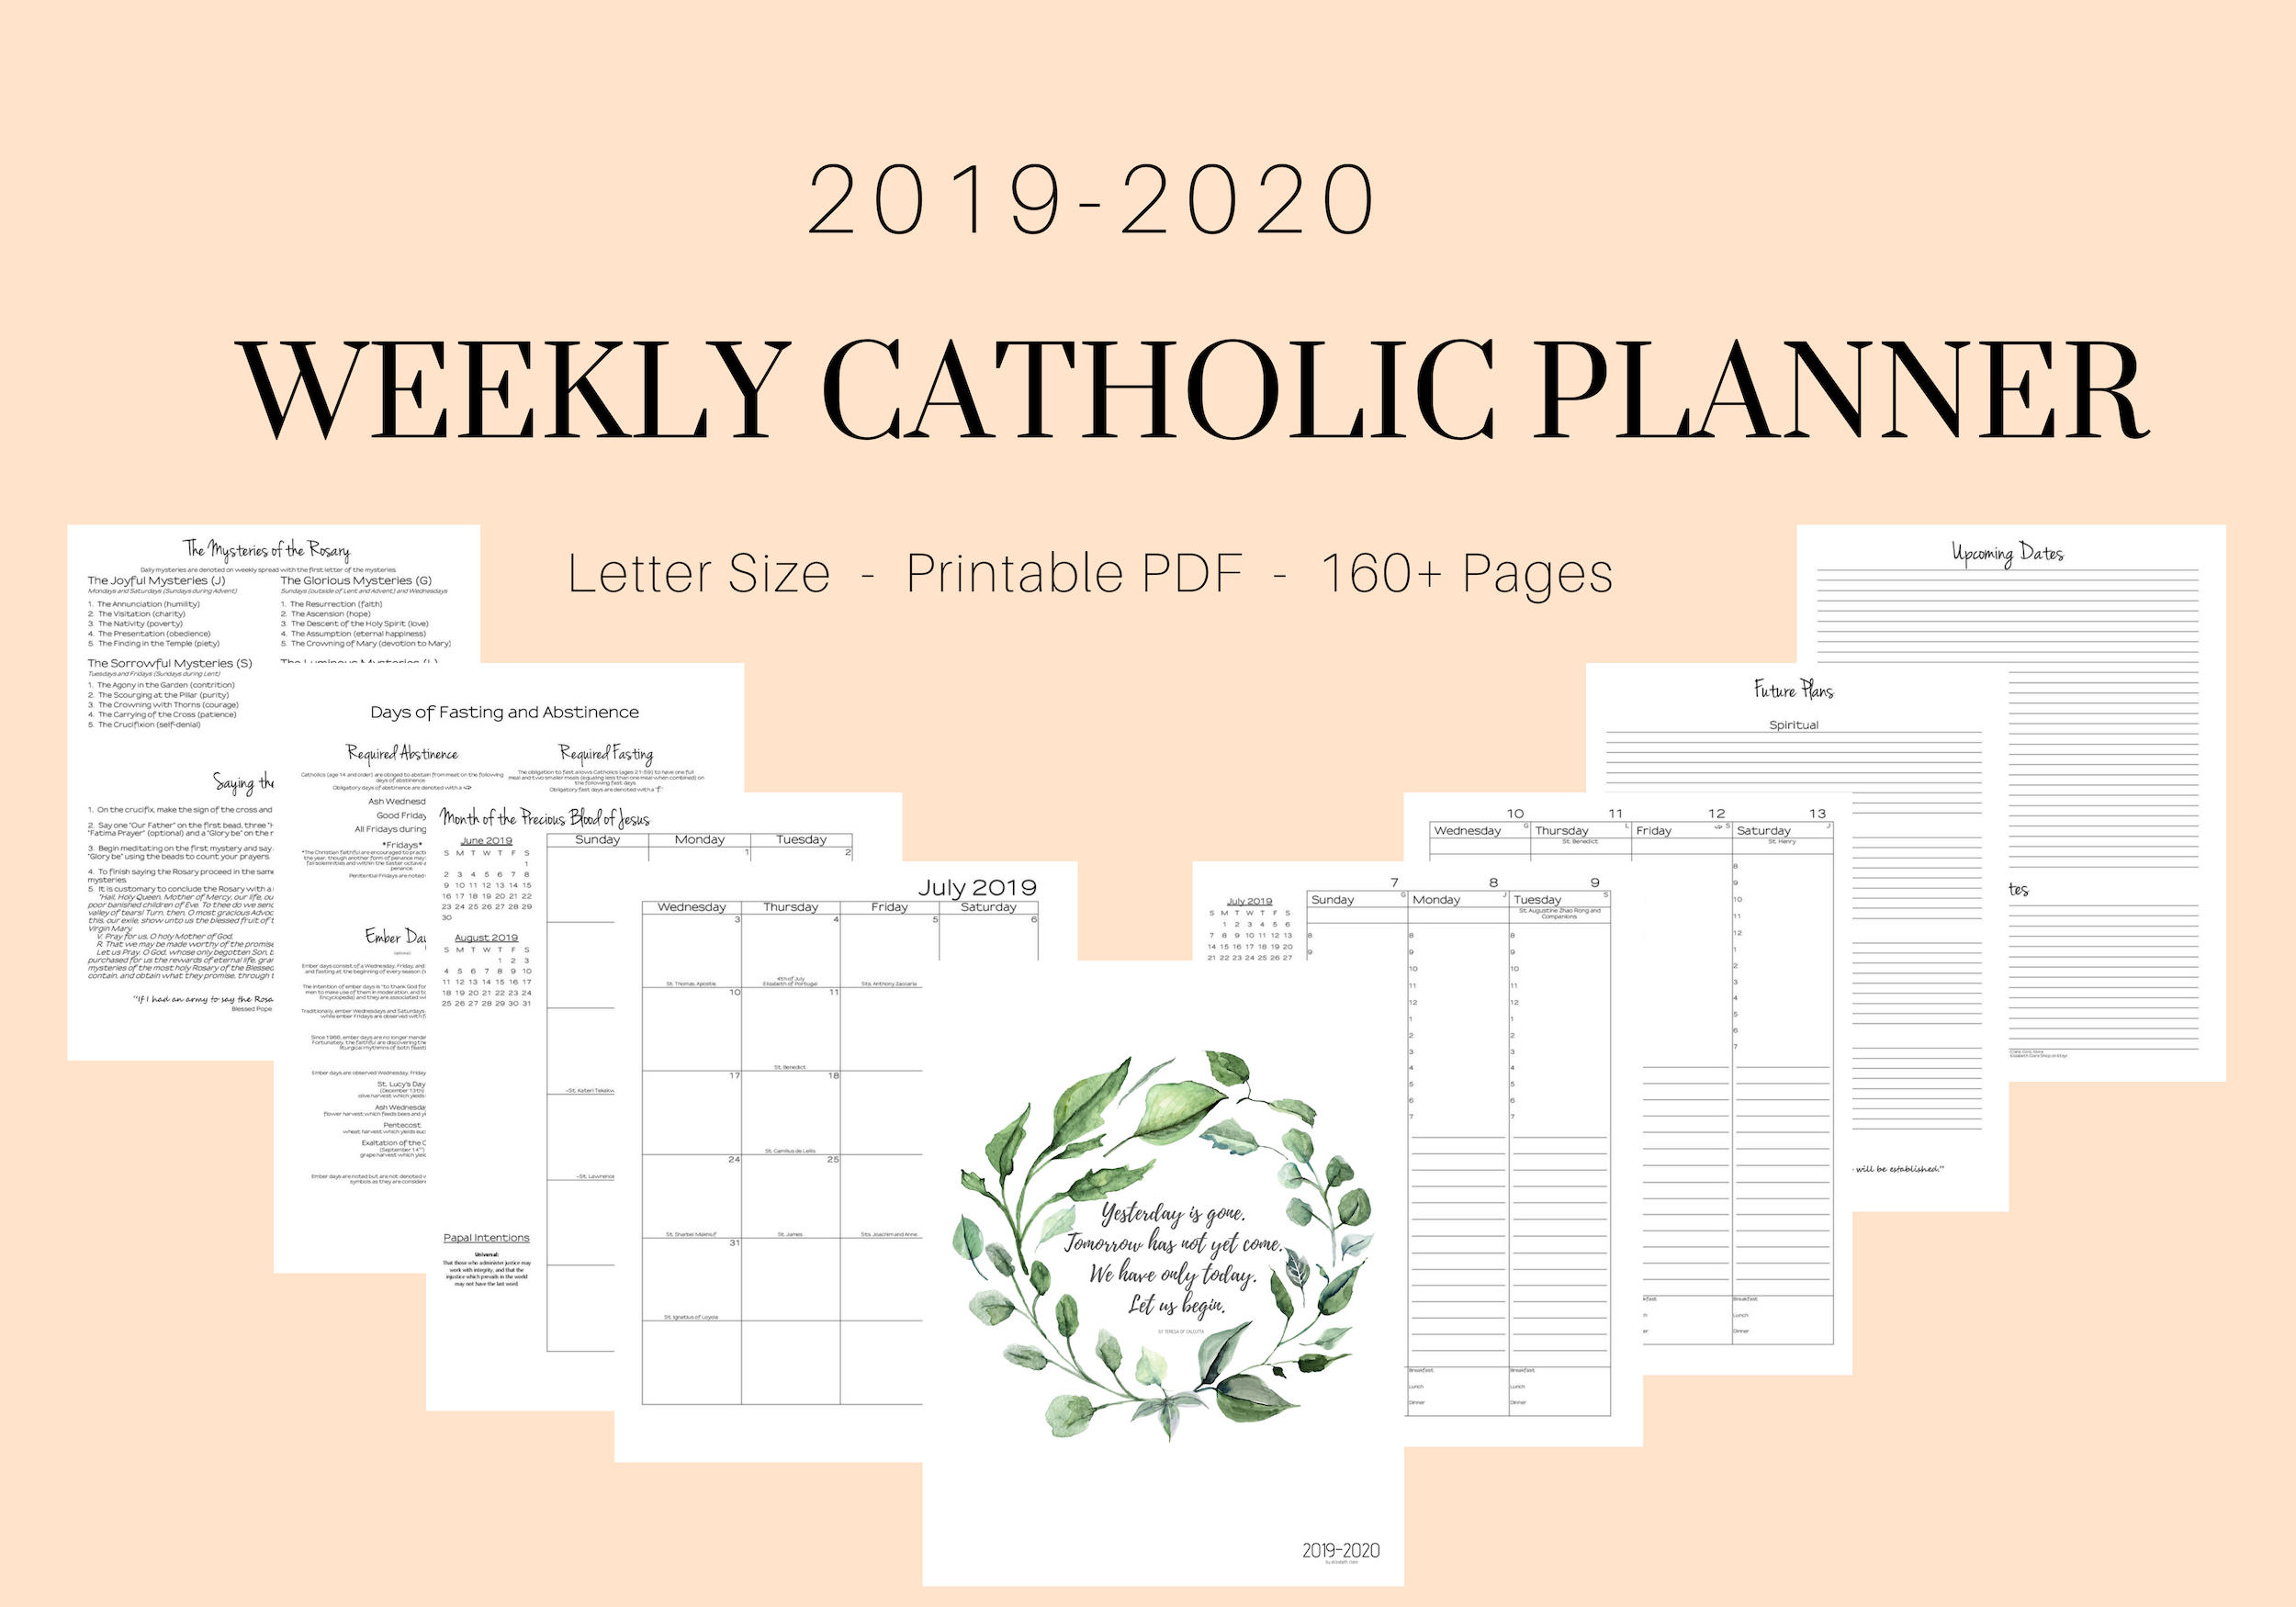 20192020 Catholic Weekly Planner intended for Catholic Liturgical Calendar 2020 With Daily Readings